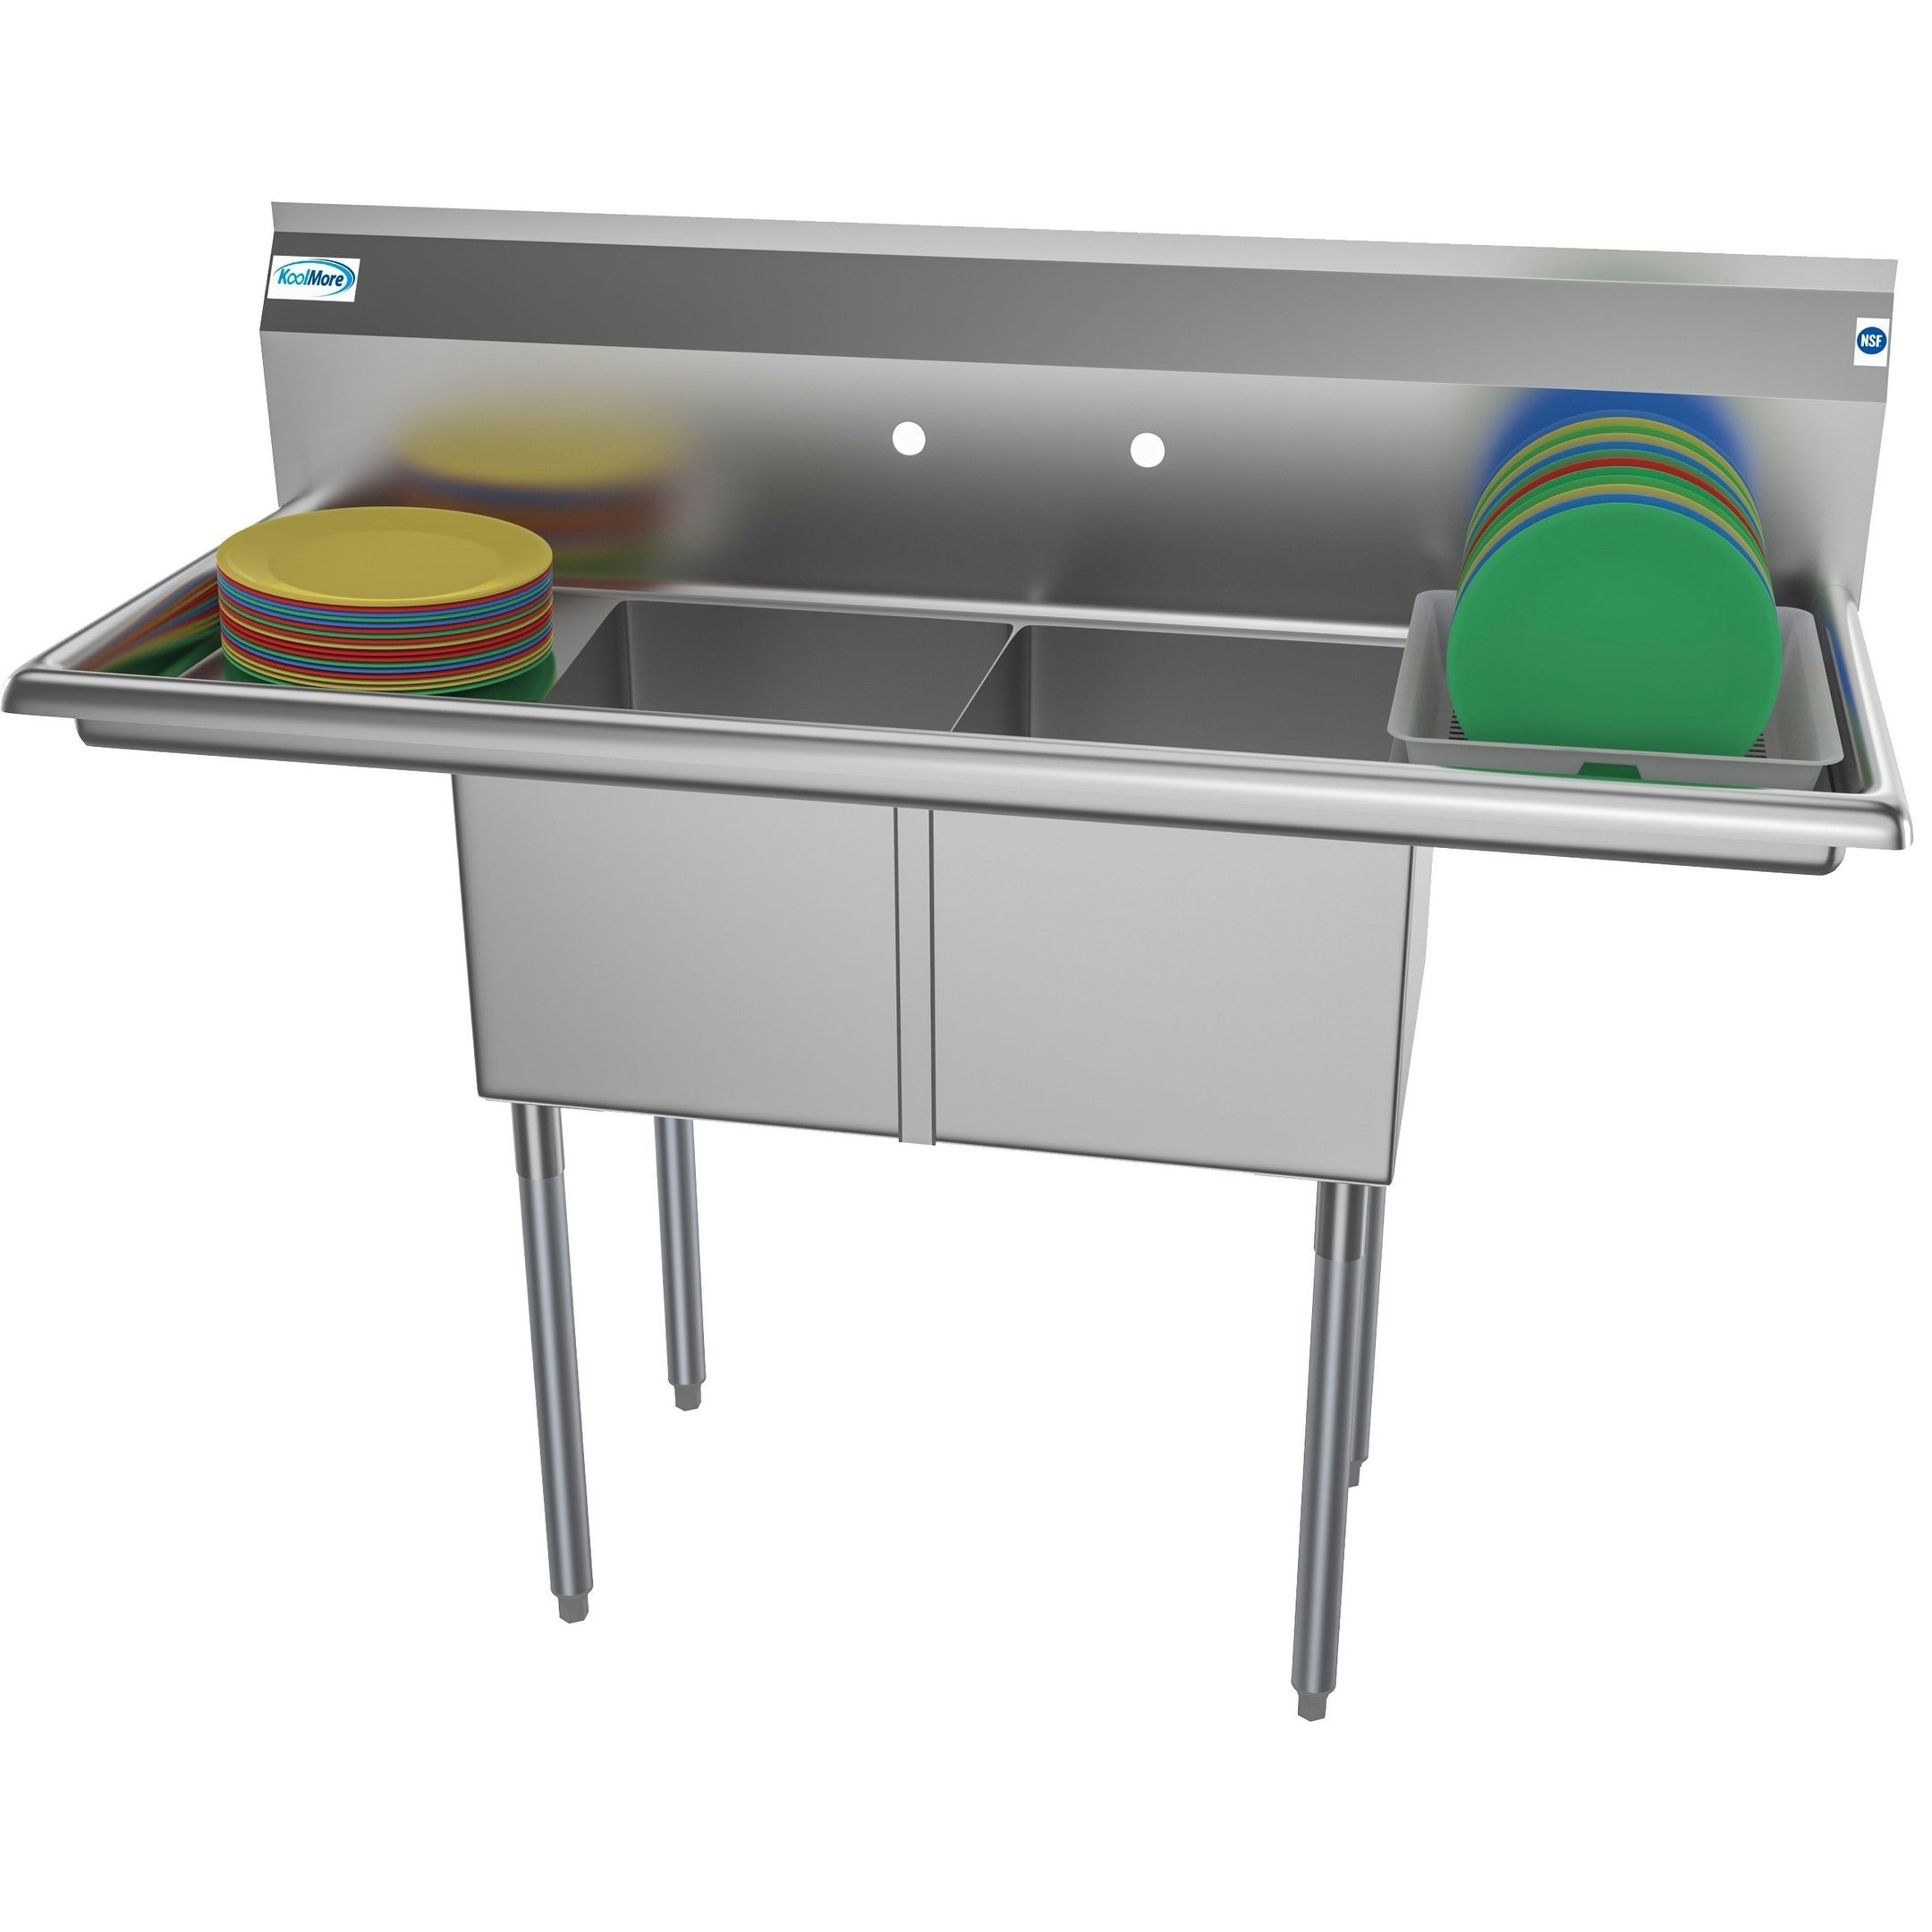 Koolmore 52 Inch Two Compartment Stainless Steel Commercial Kitchen Prep Sink 2 Drainboards Overstock 27457933